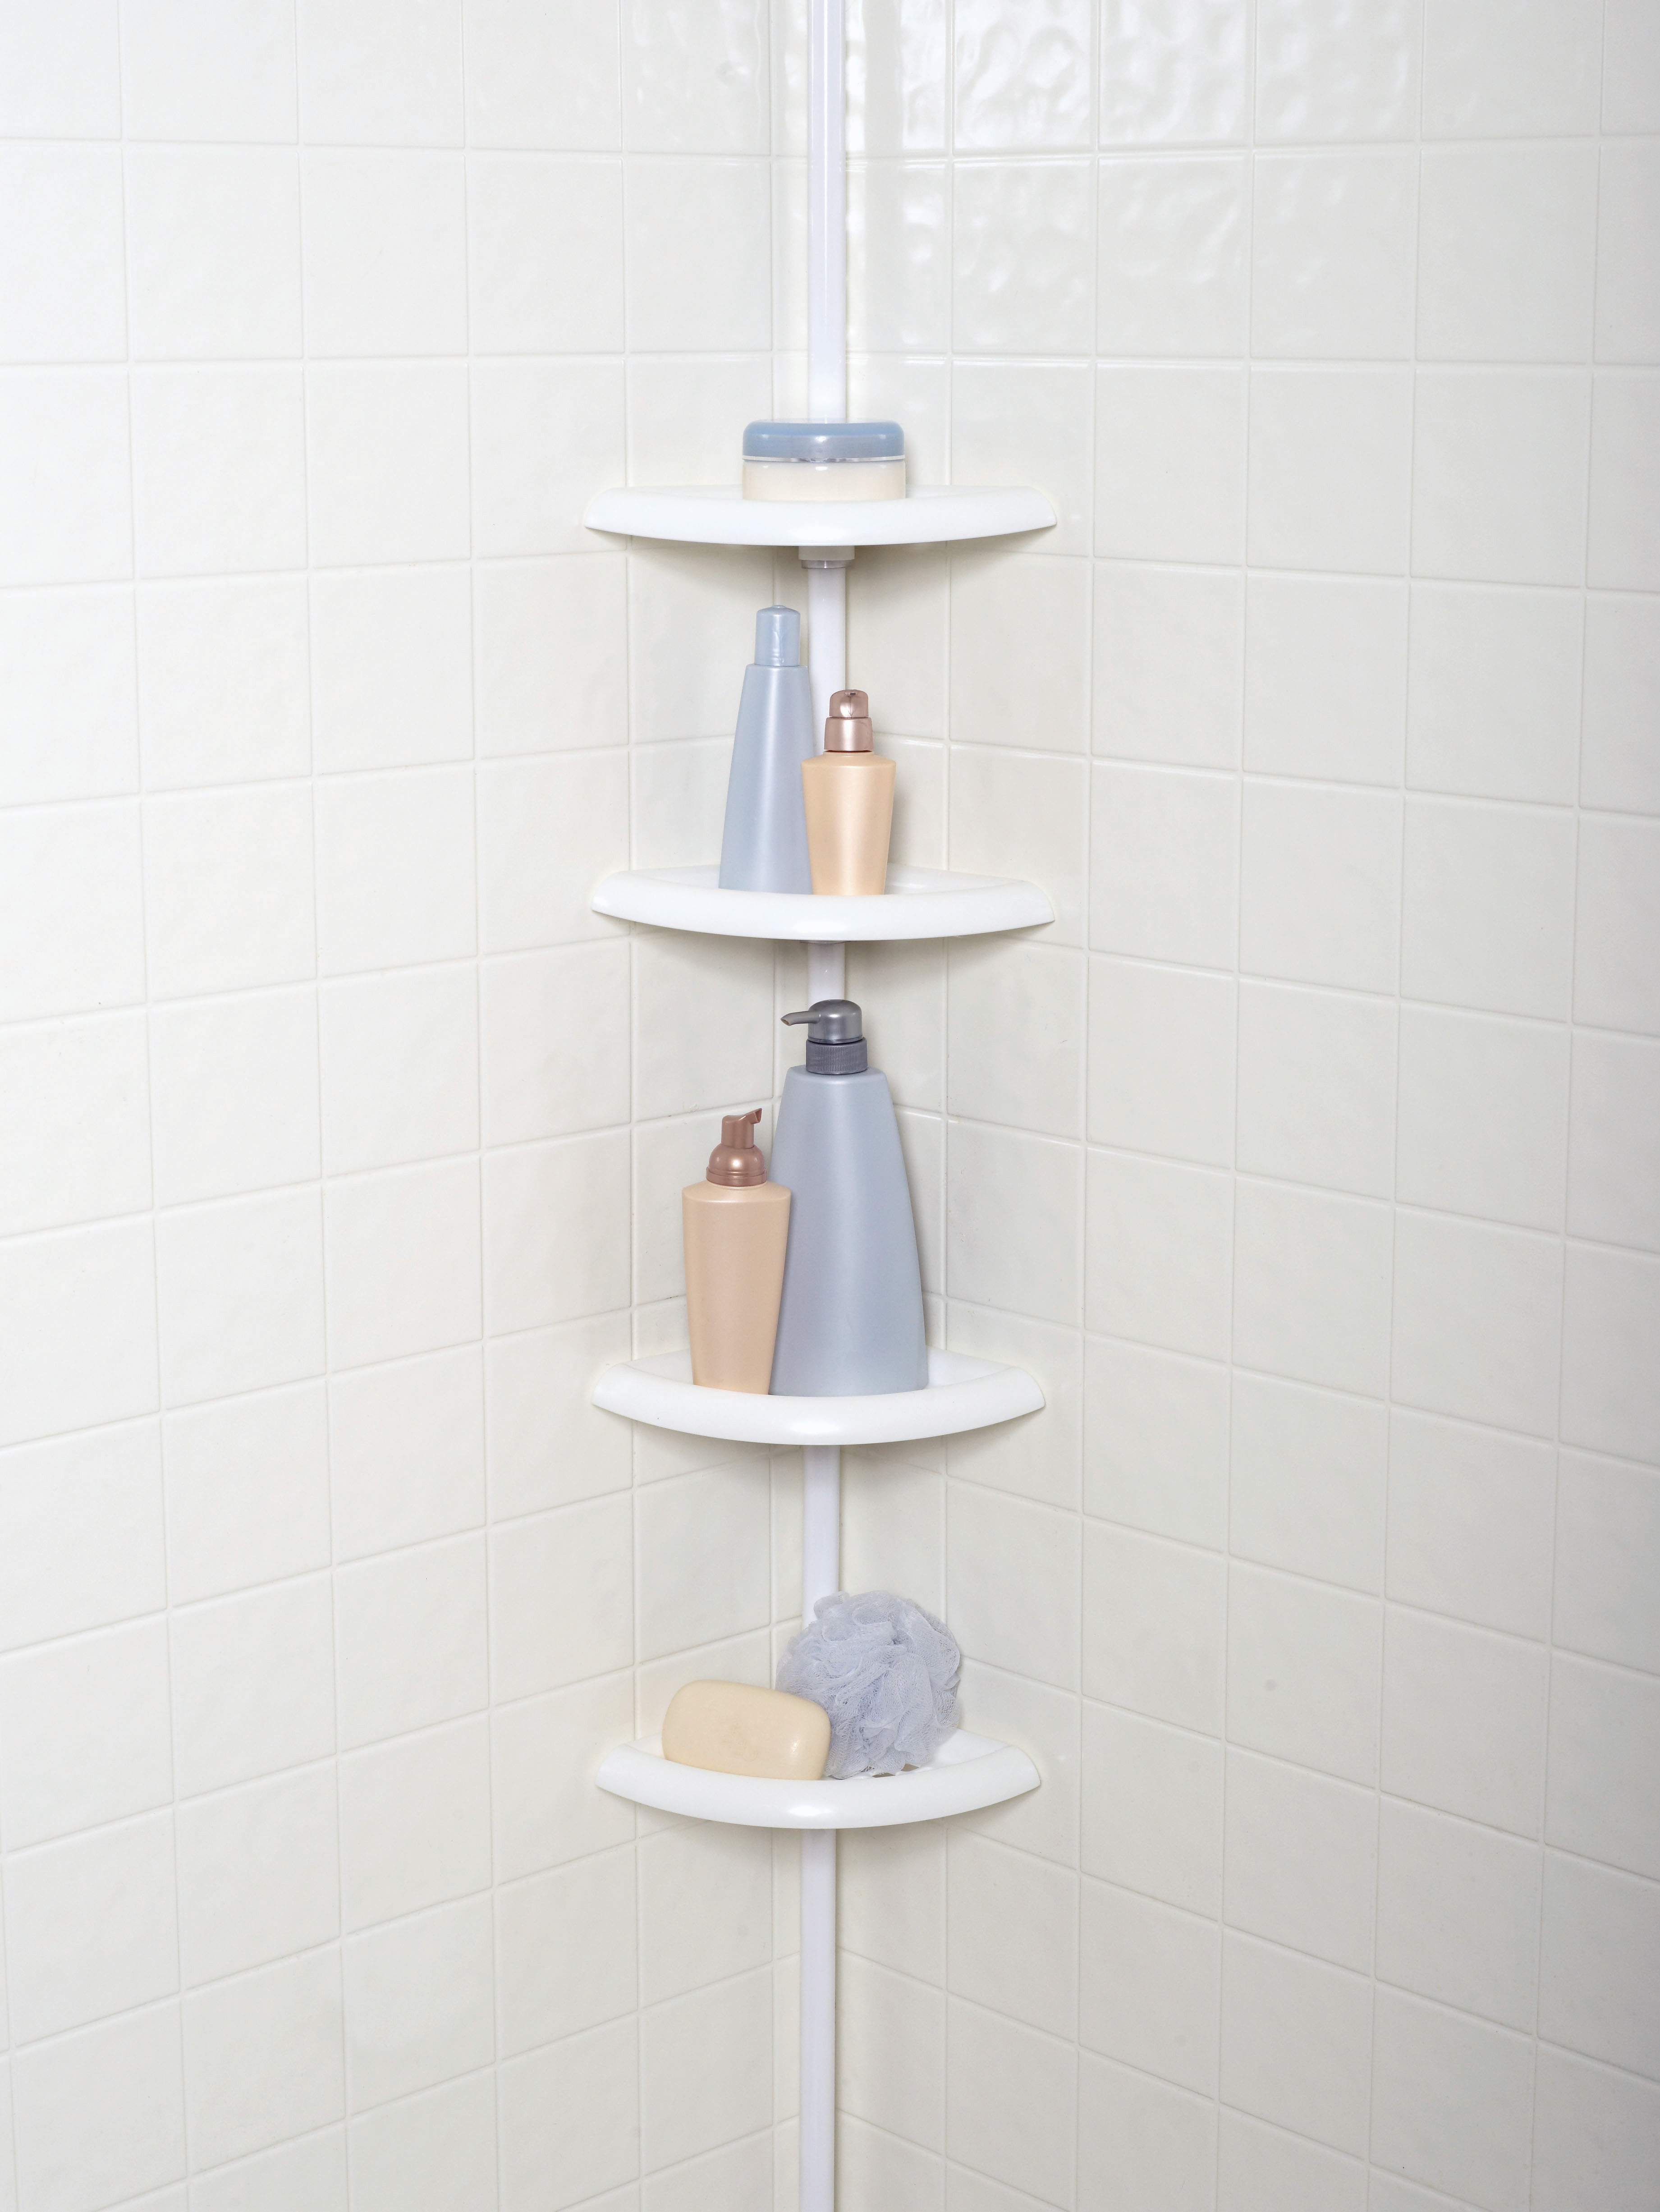 Mainstays 4 Tier Tension Pole Shower Caddy, White